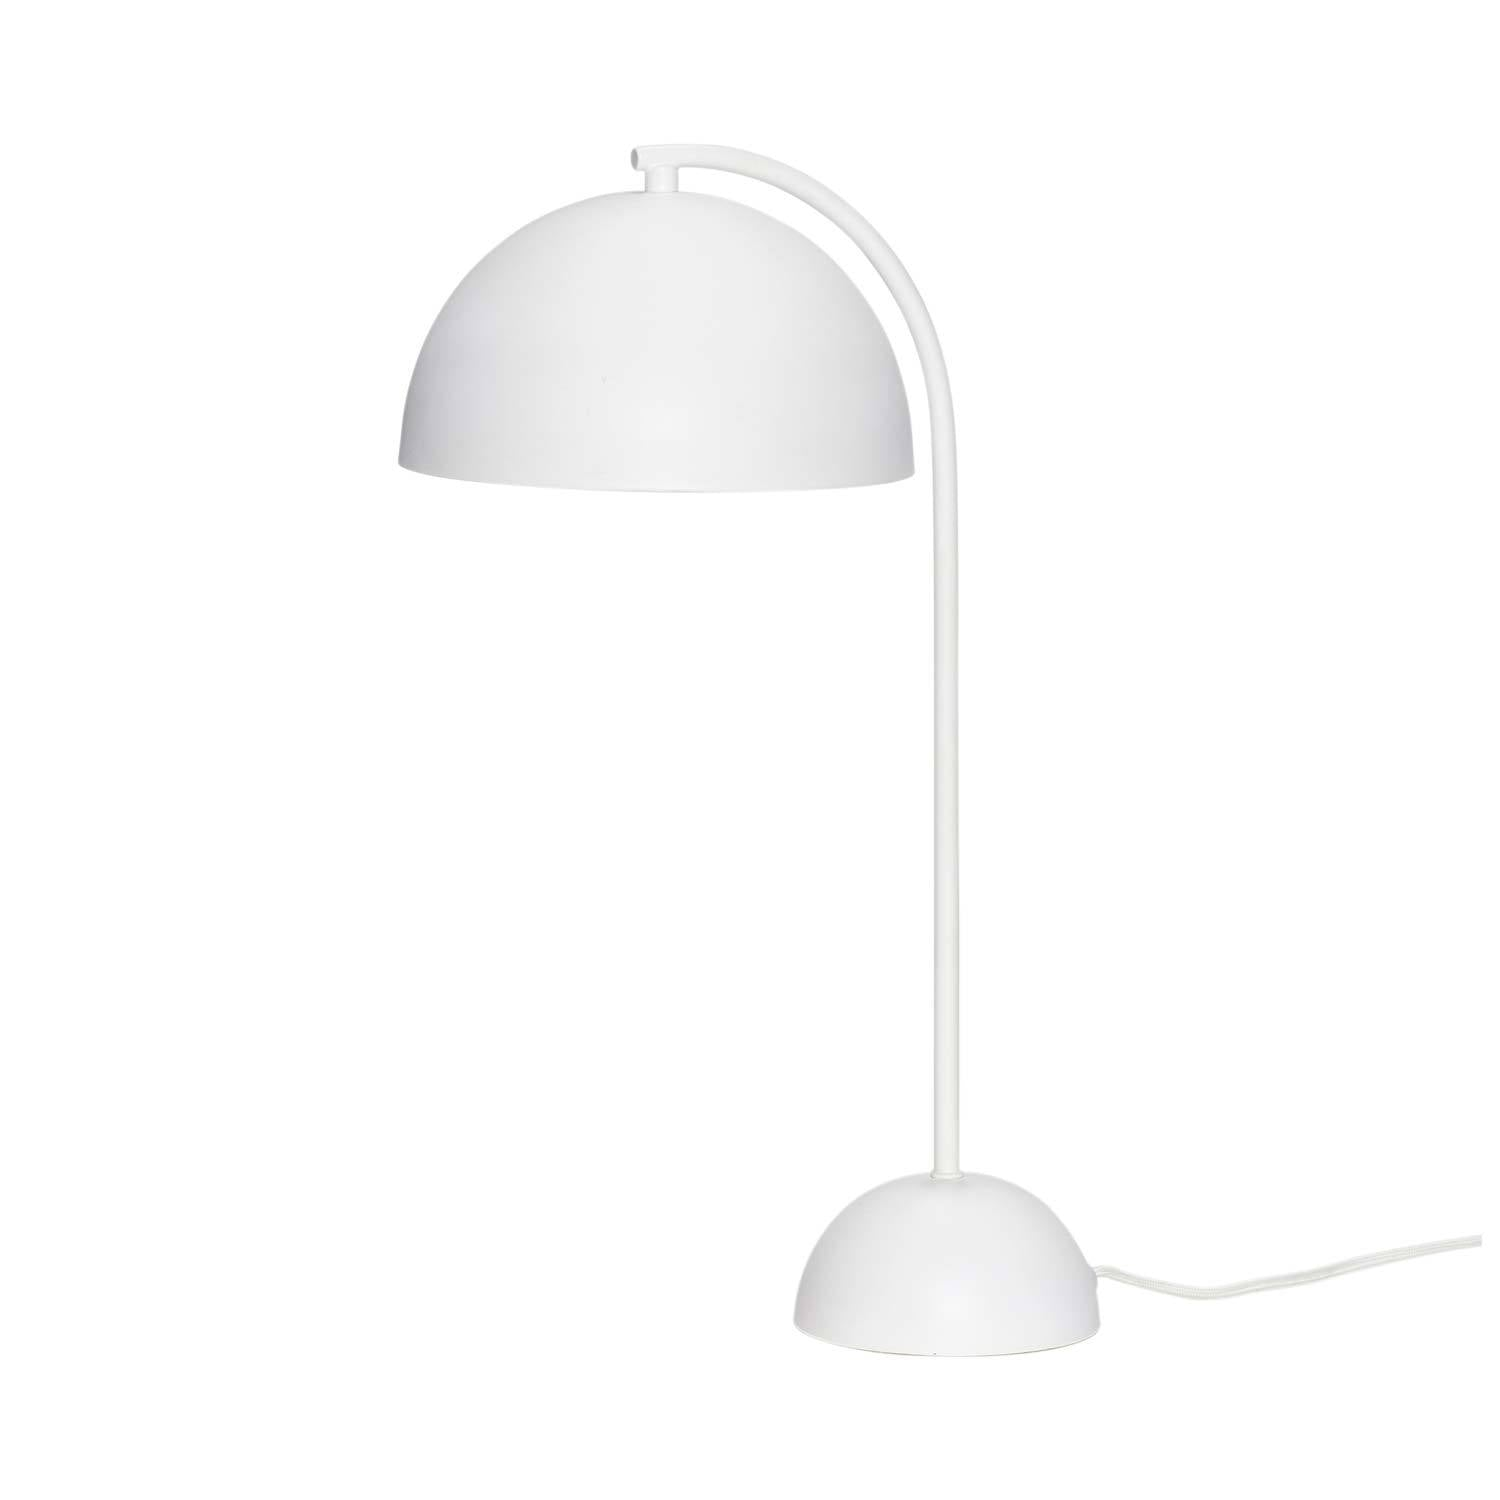 Image of   Bordlampe i metal, hvid